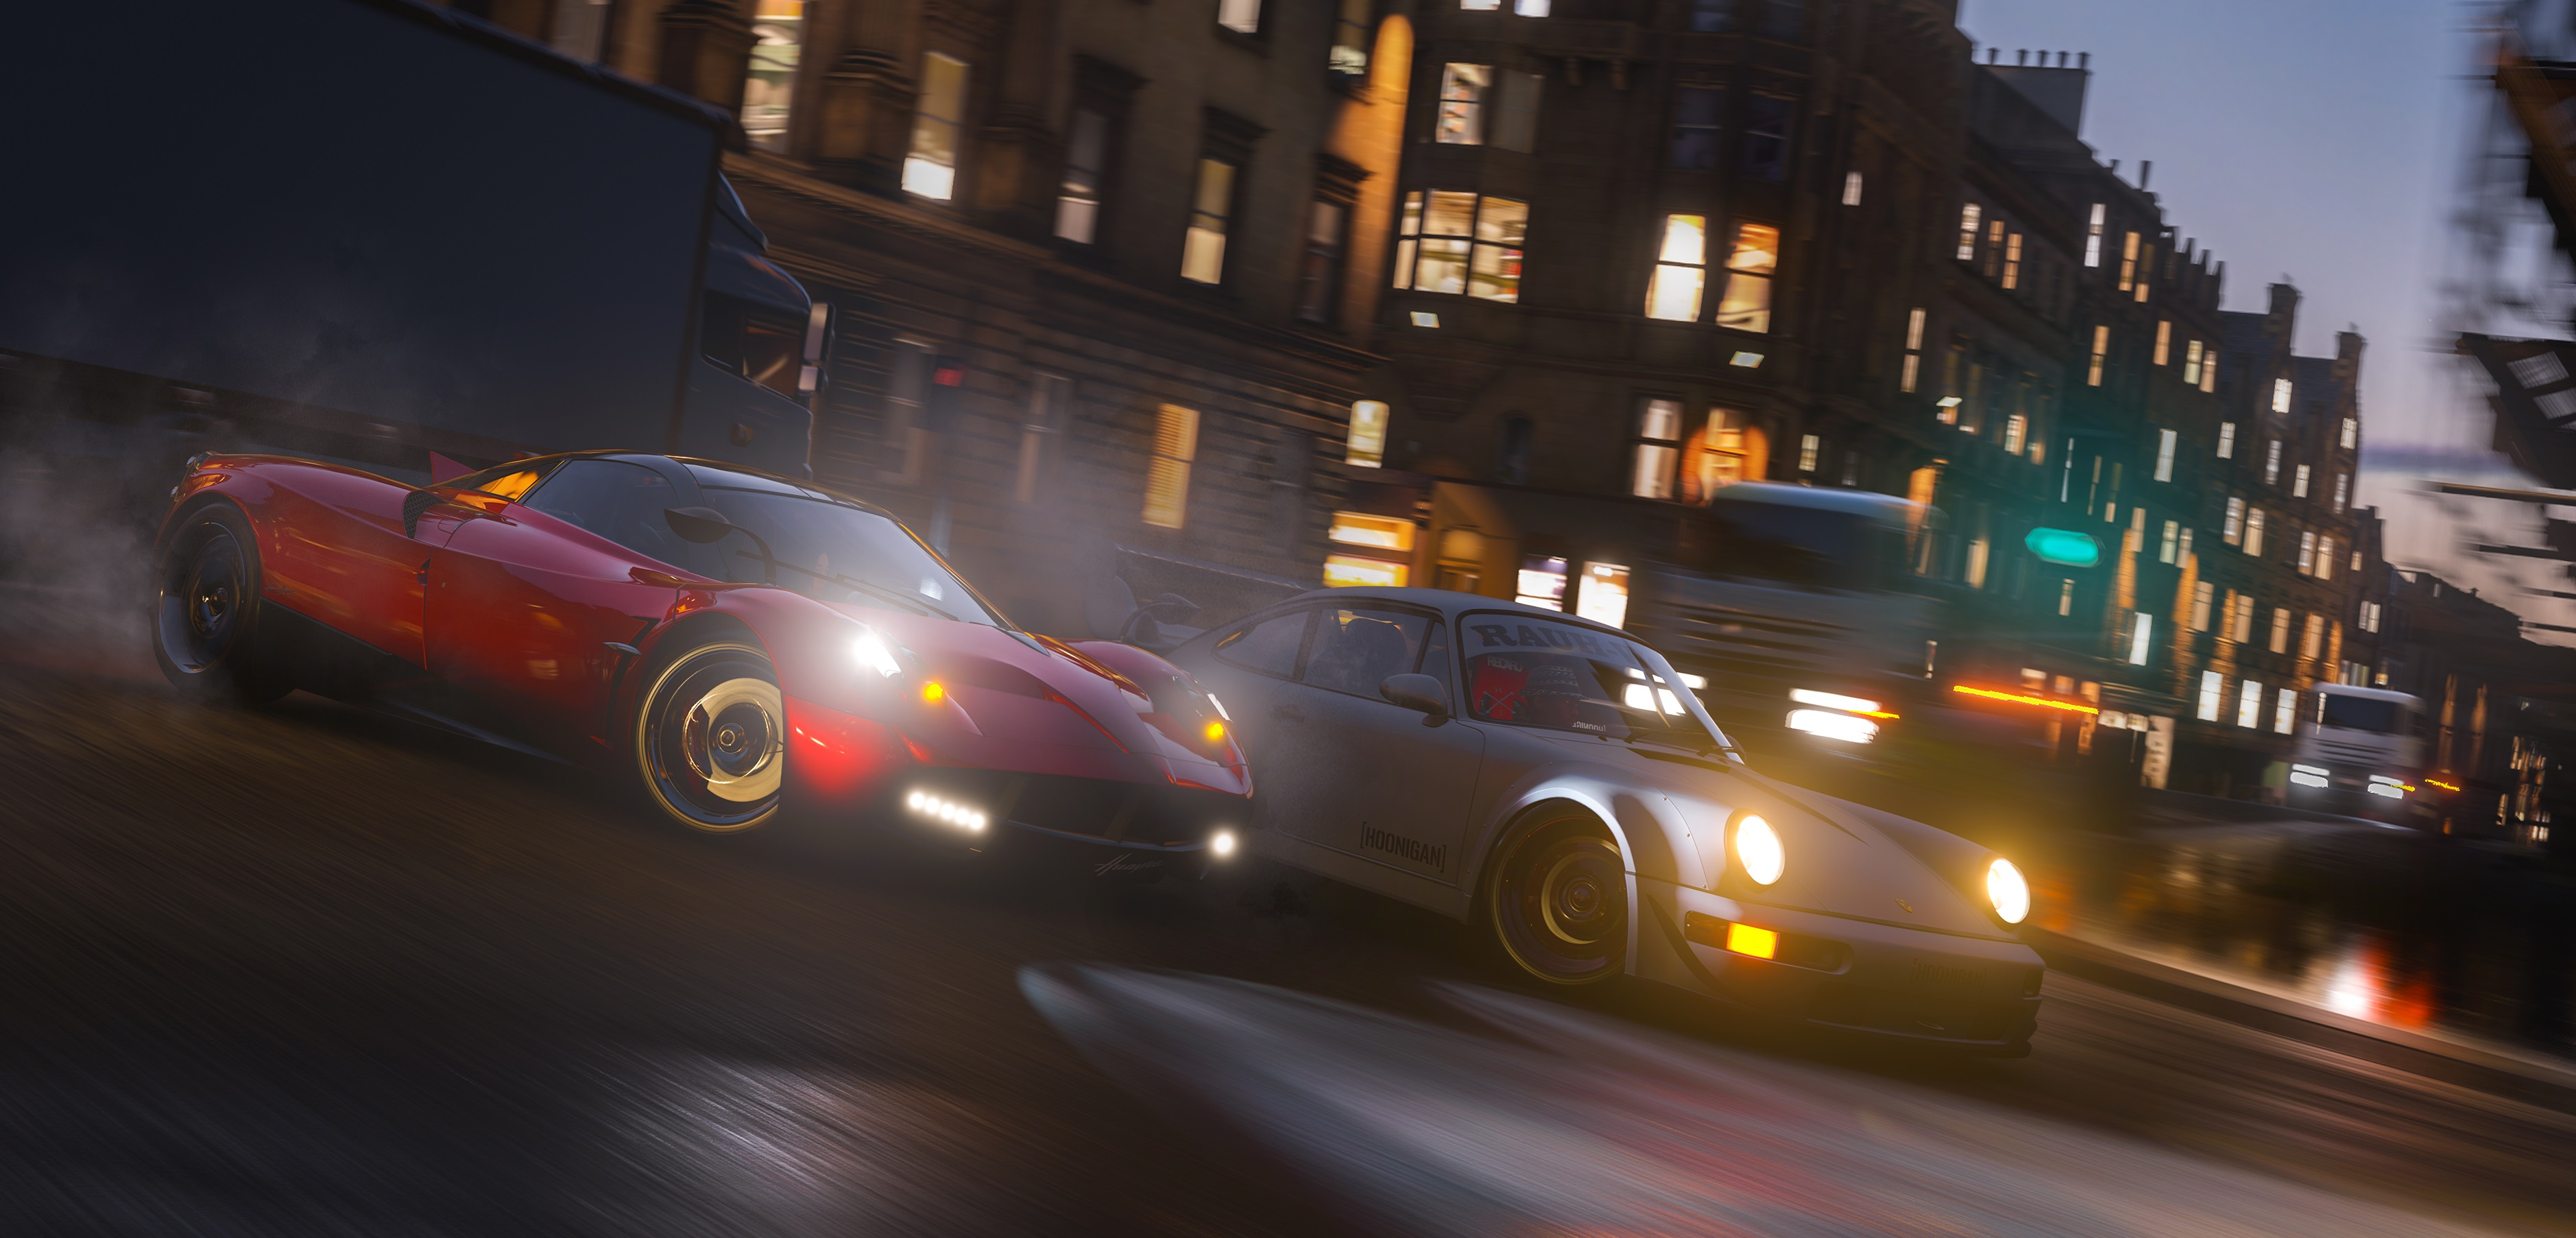 Forza Horizon 4's online play is confusing and confining, but still worth the ride